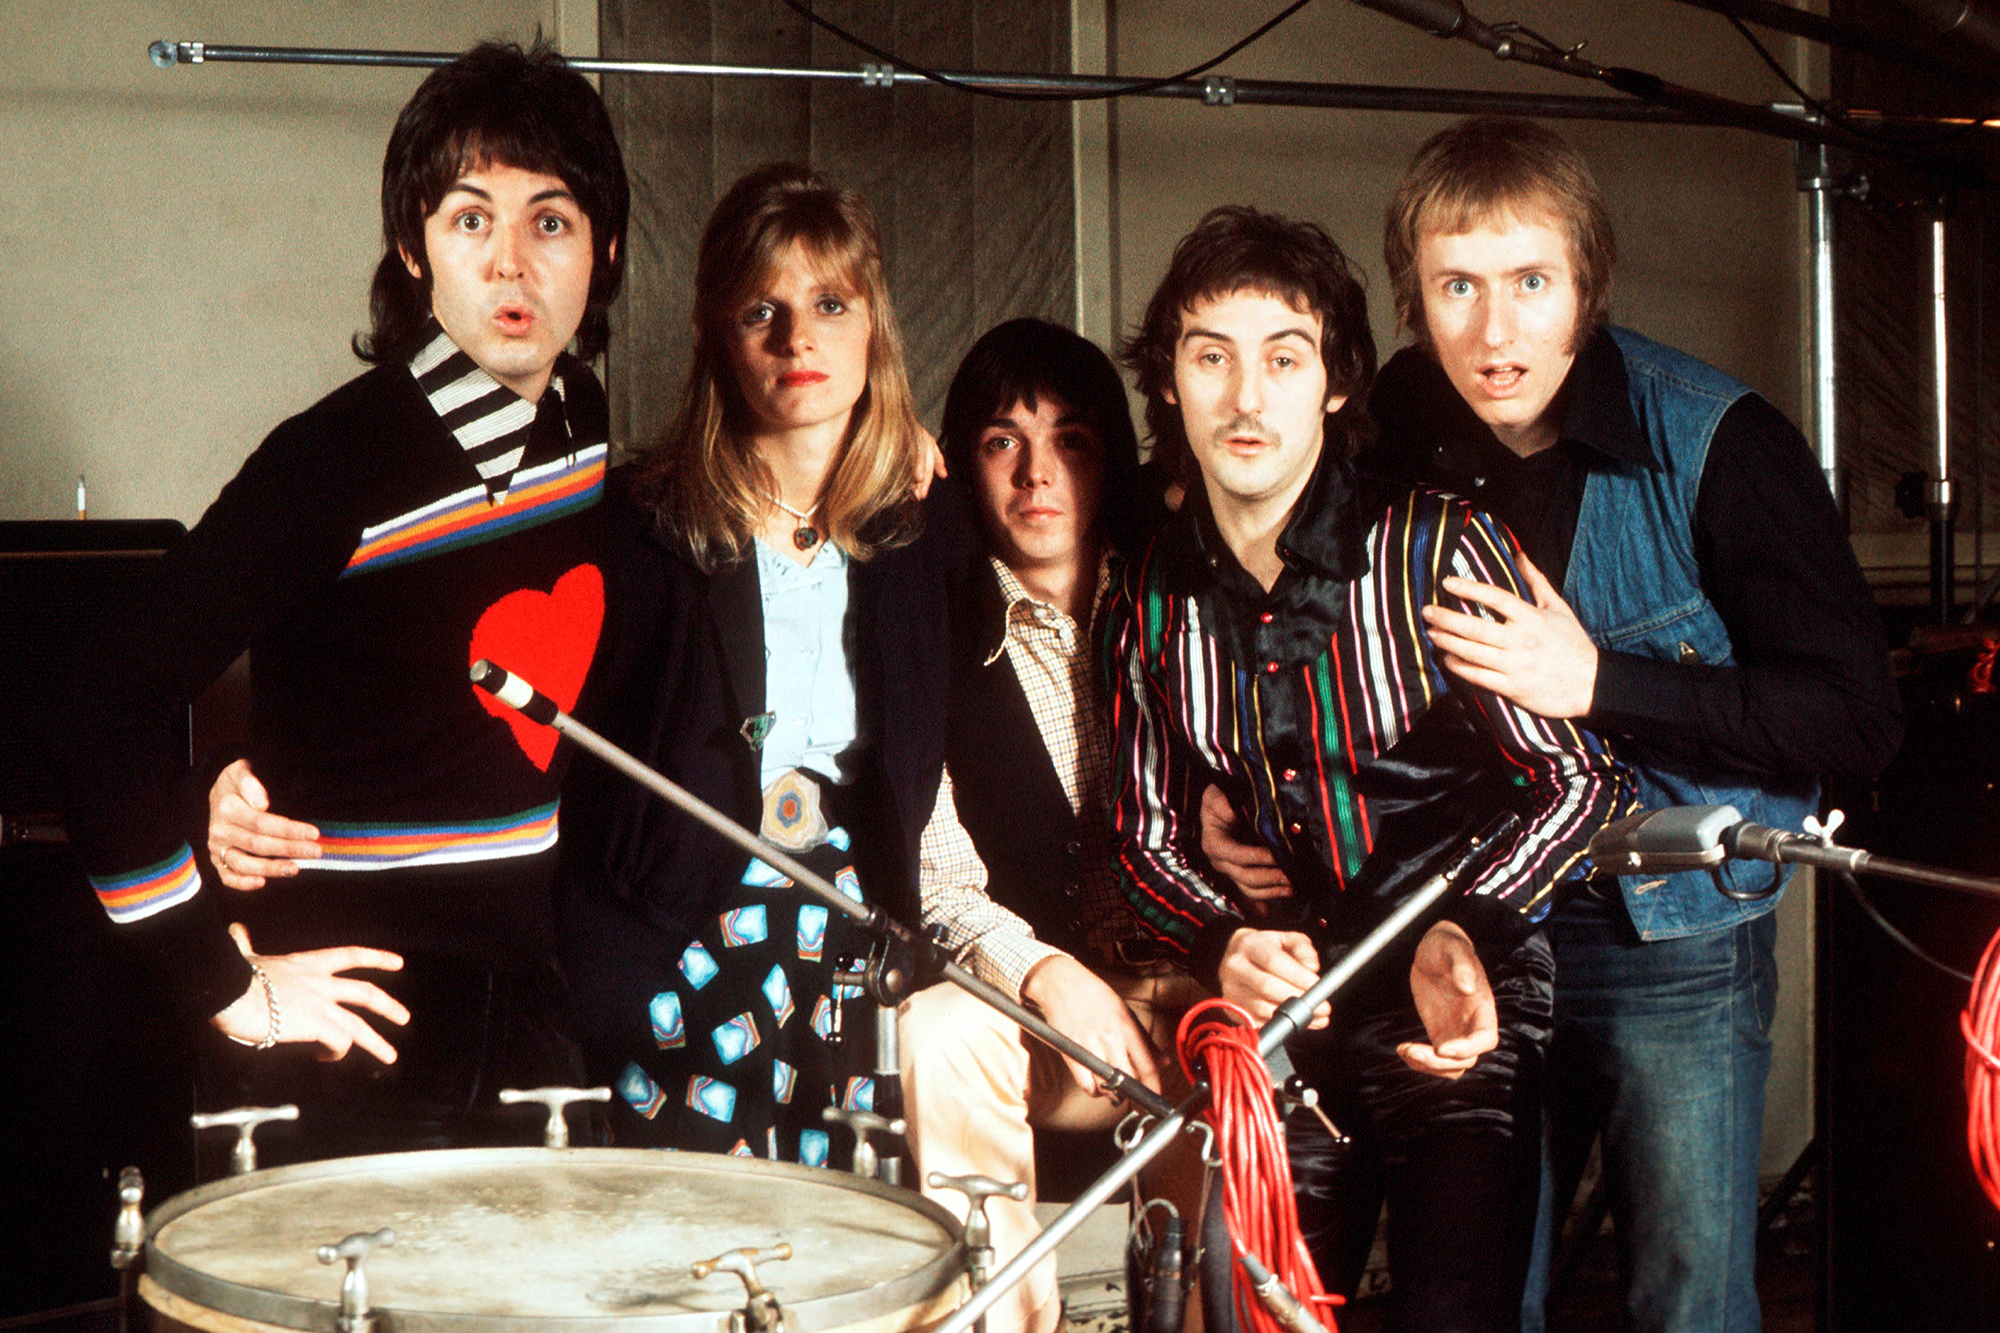 Paul McCartney, Linda McCartney (1941 - 1998), Jimmy McCulloch, Denny Laine and Geoff Britton of Wings in 1974